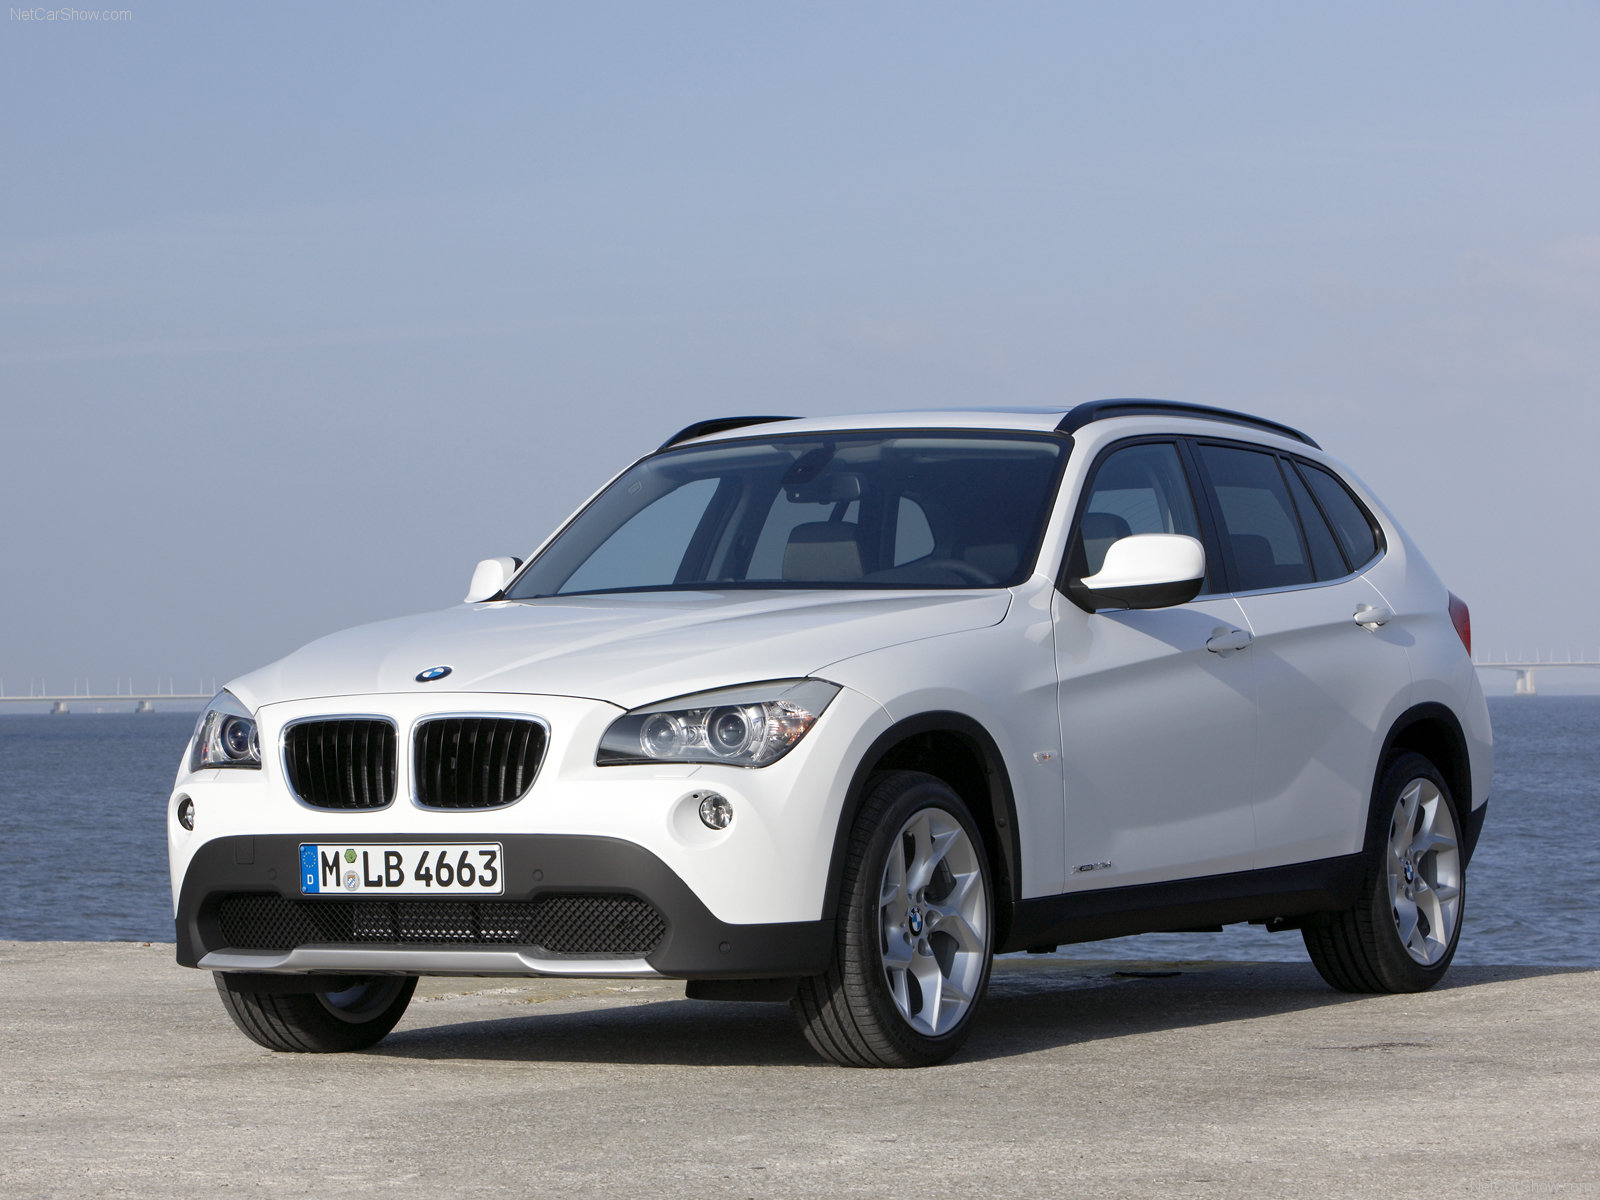 BMW X1 SUV launched in India: Review, Photos & Specs